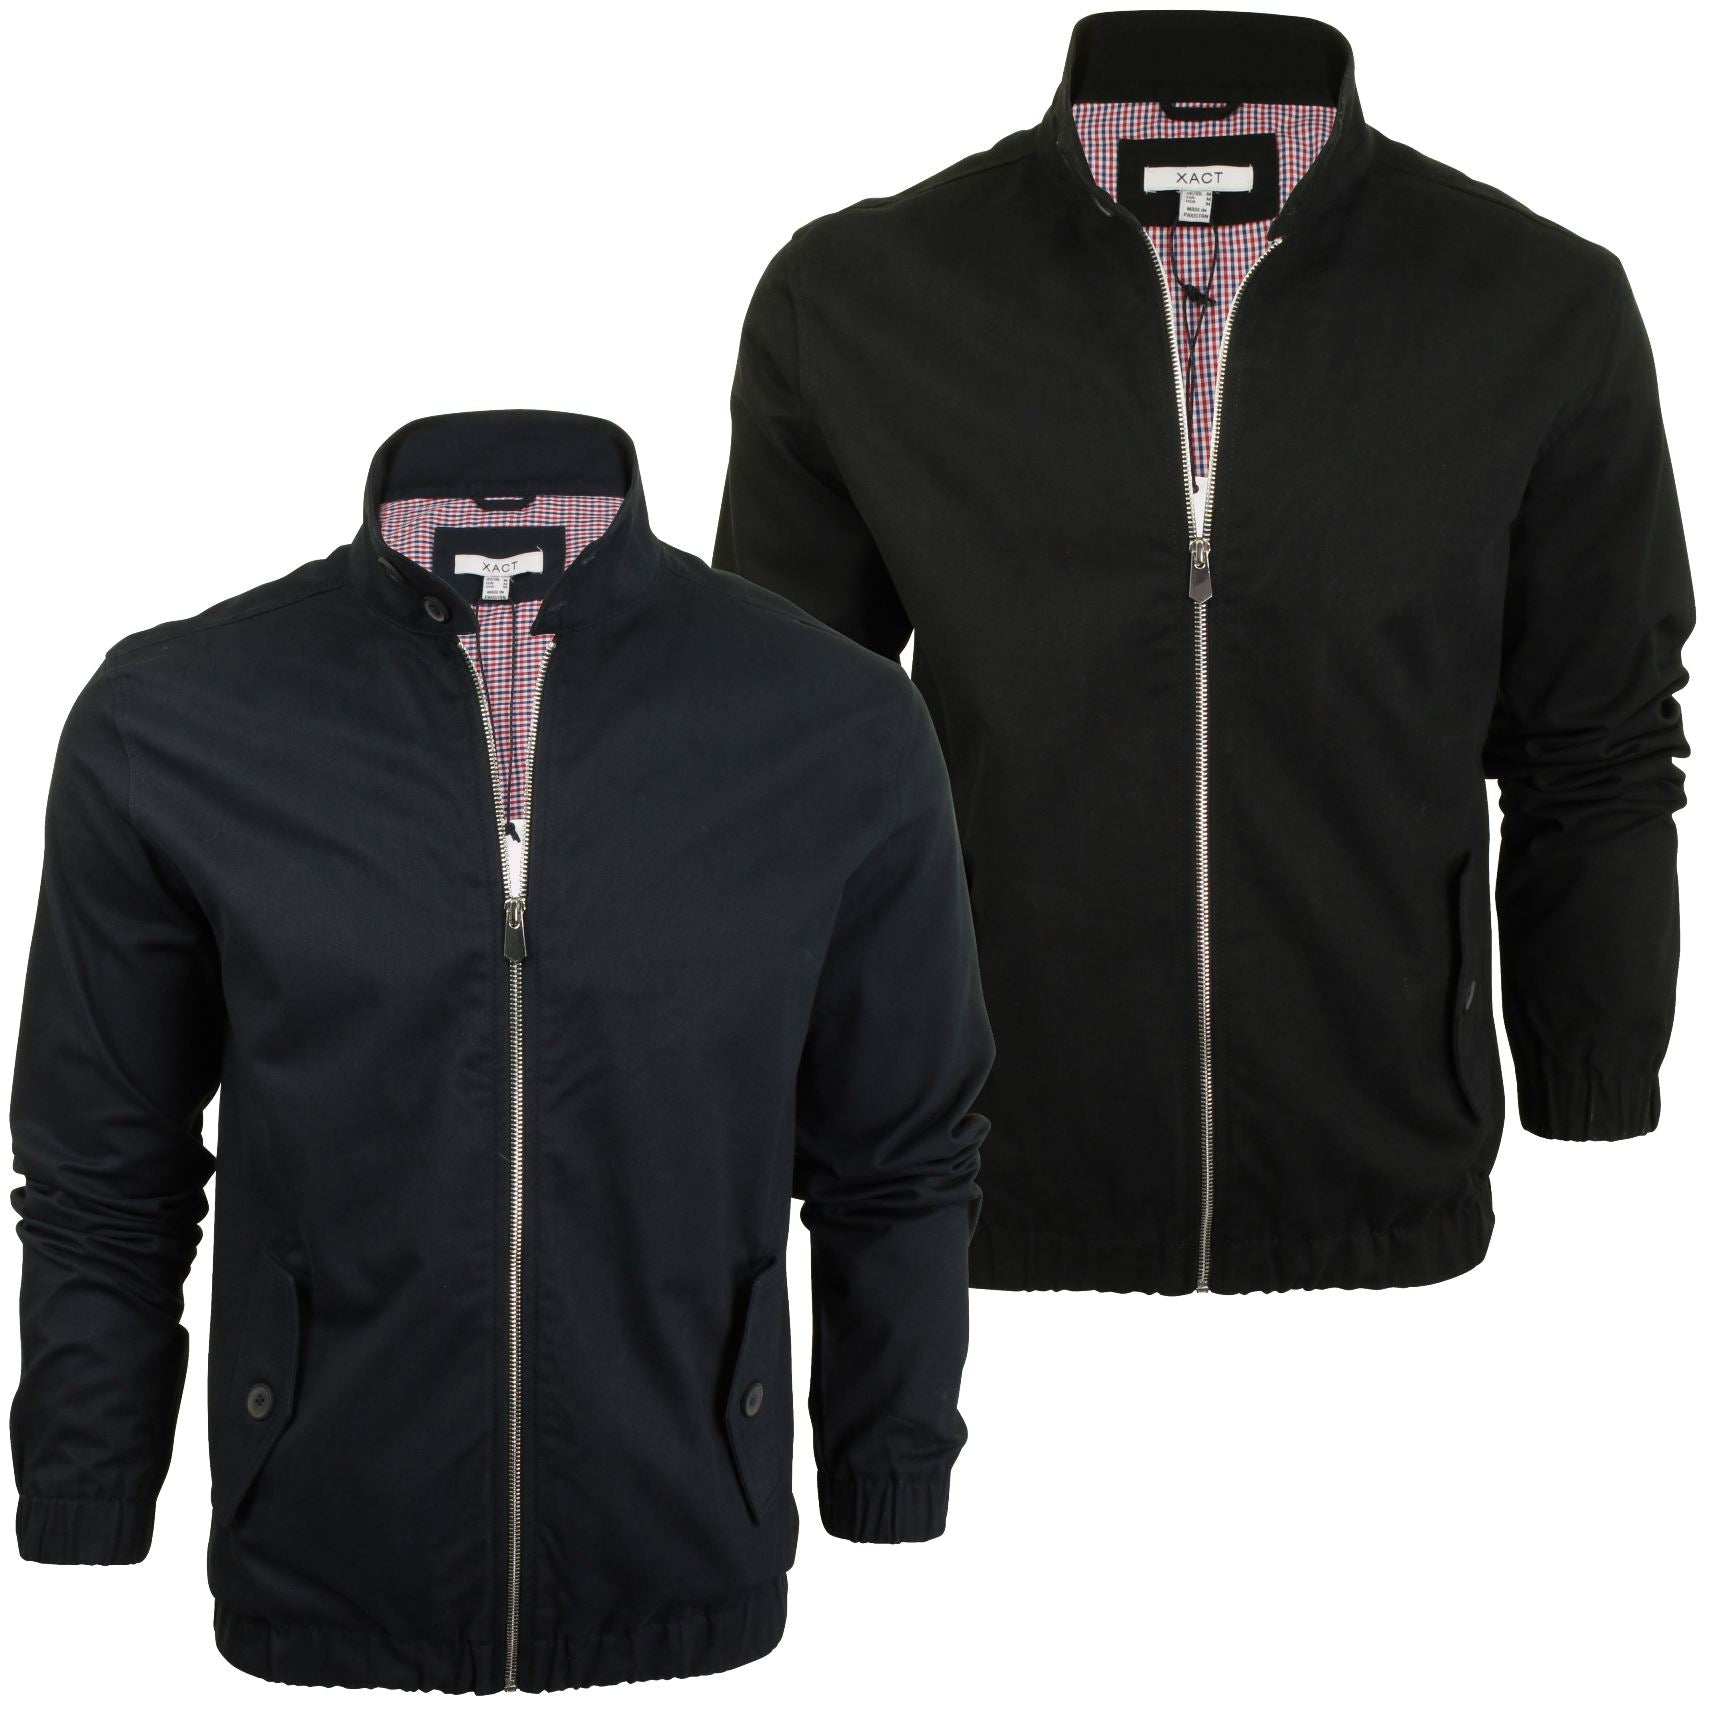 Mens Harrington Jacket by Xact-Main Image